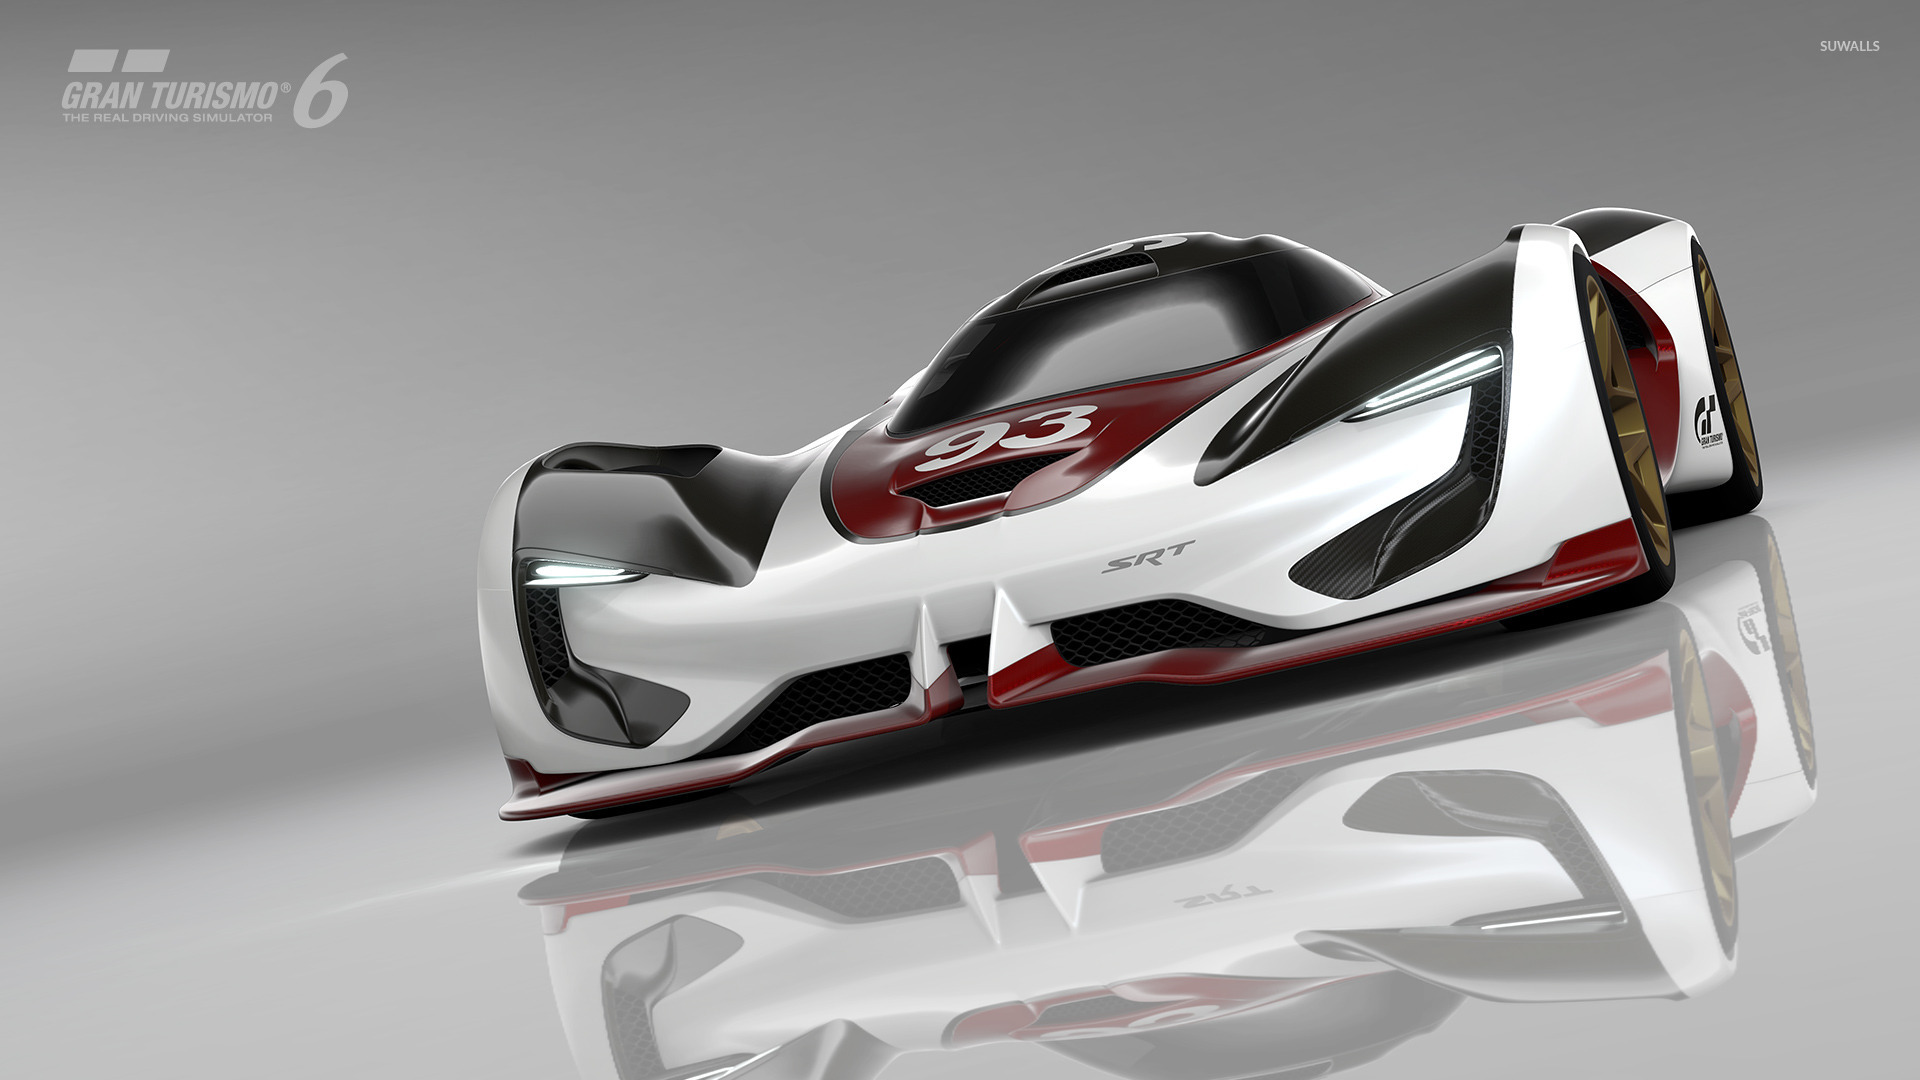 Srt tomahawk gran turismo 6 wallpaper game wallpapers 43663 srt tomahawk gran turismo 6 wallpaper publicscrutiny Image collections